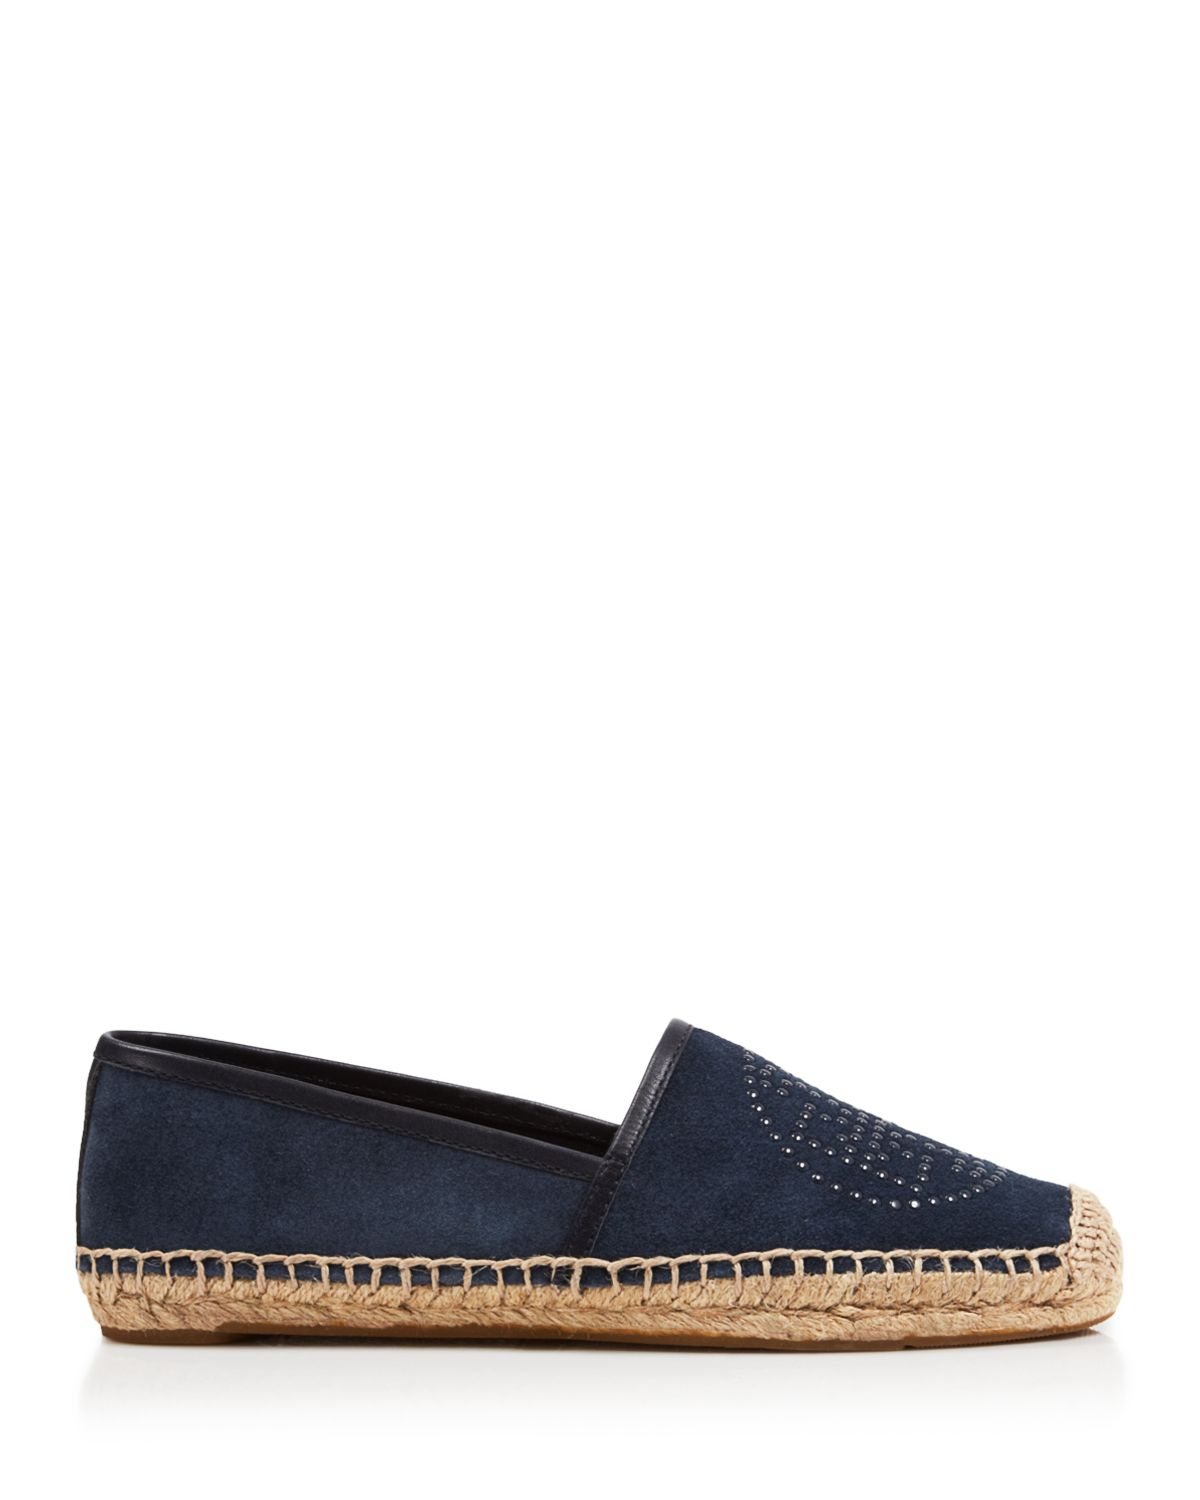 0053370a14a9 Lyst - Tory Burch Espadrille Flats - Kirby Suede in Blue